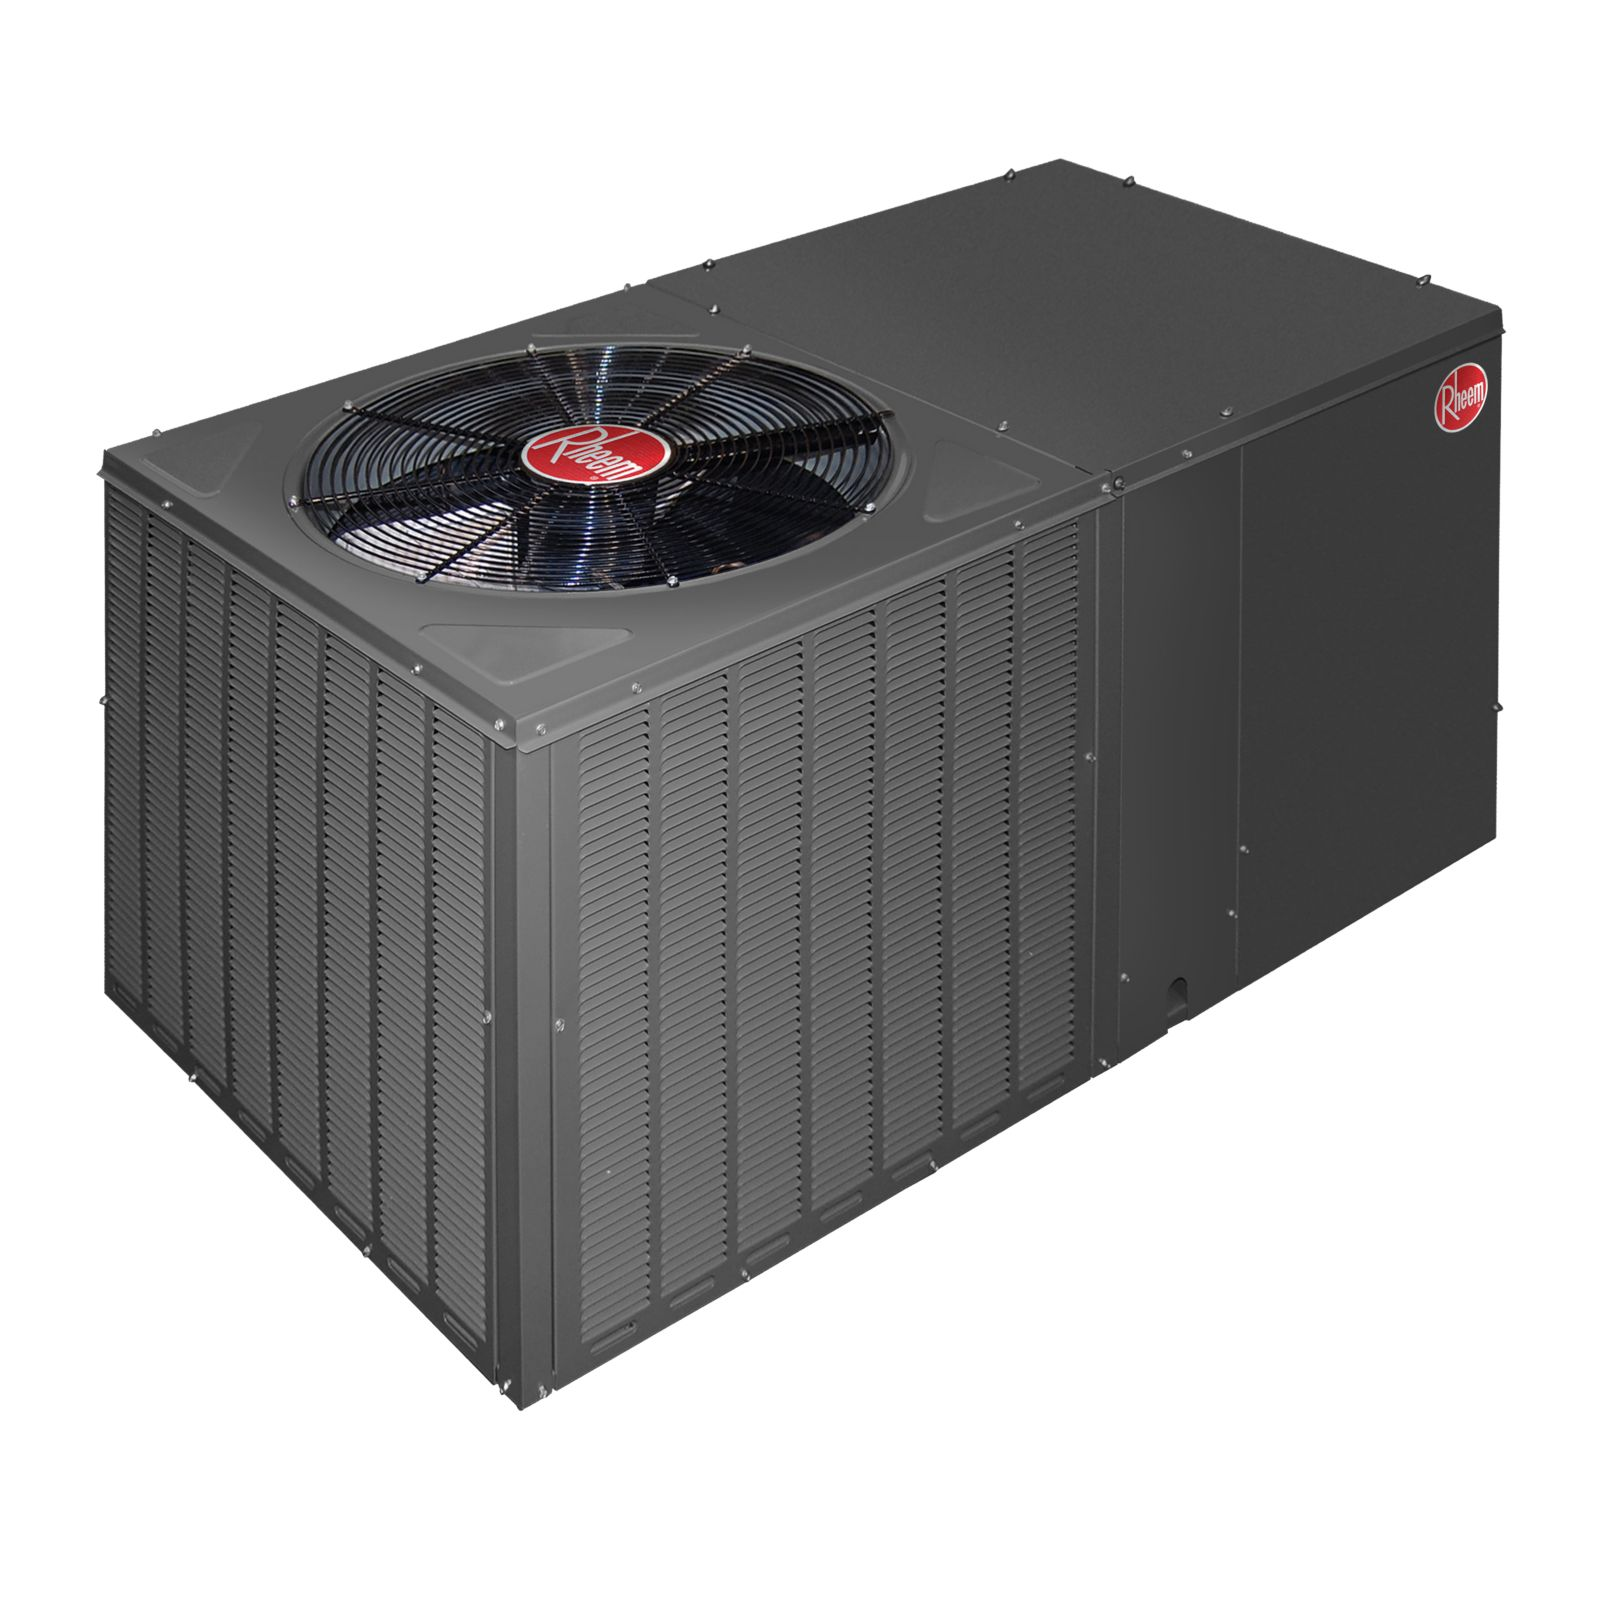 Rheem RQPM-A036JK000 - Classic 3 Ton, 14 SEER, R410A, Packaged Heat Pump With Horizontal Discharge, 208-230 V, 1 Ph, 60 Hz